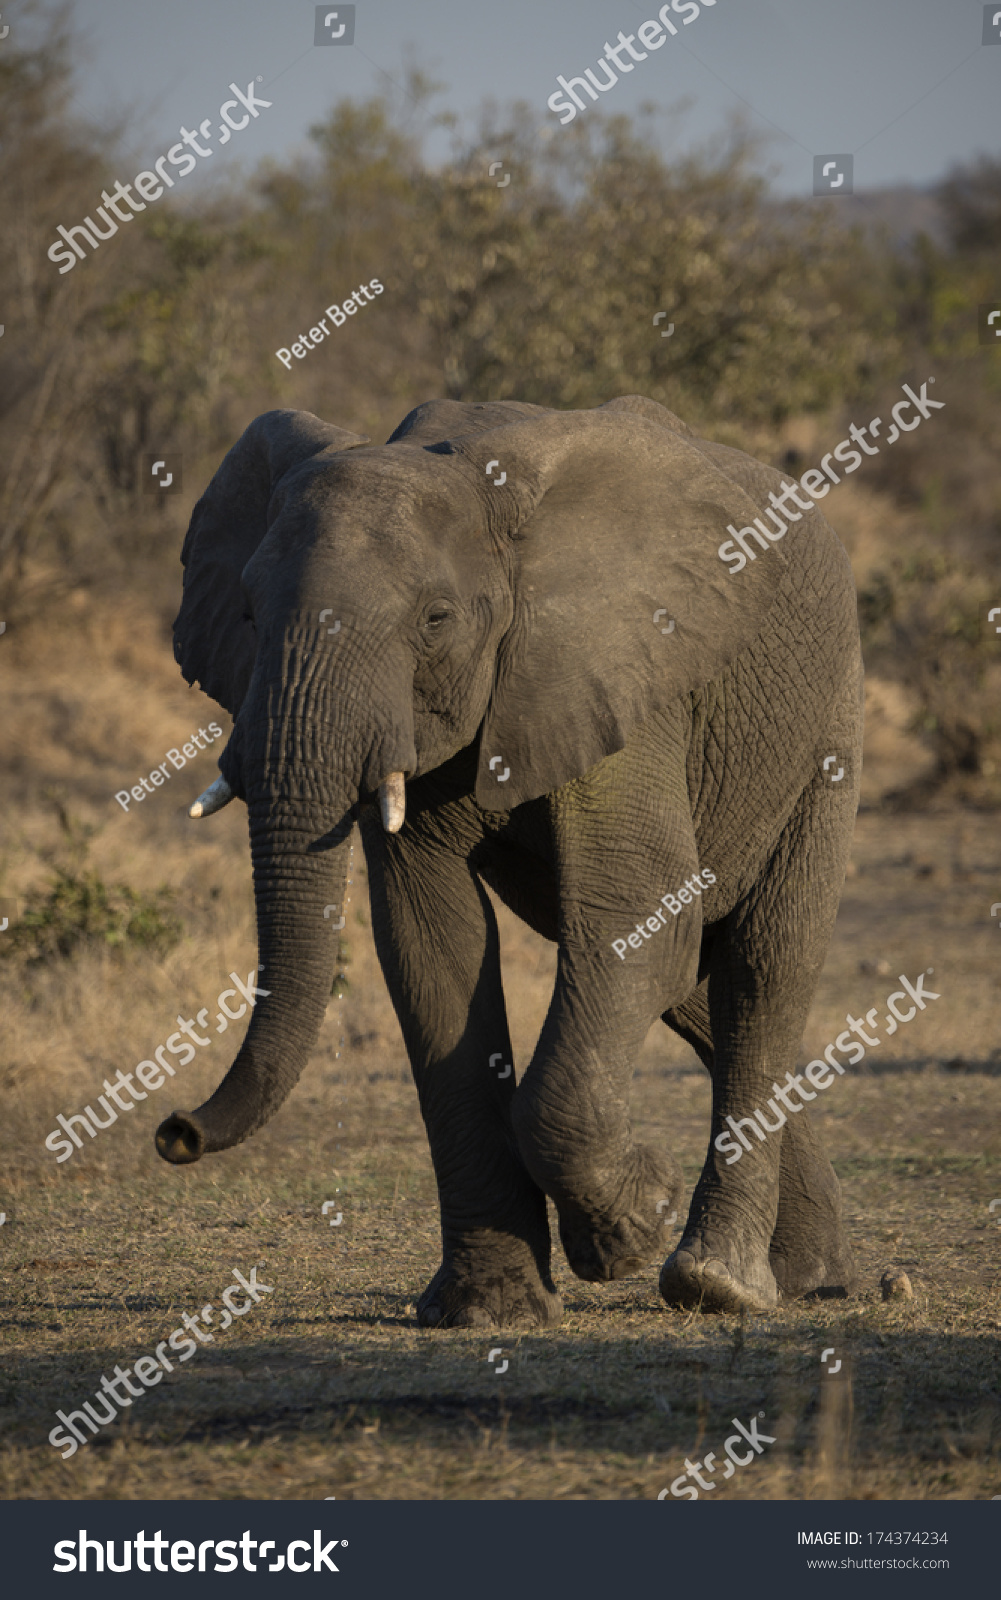 An Old Elephant Walks Past After A Drink Stock Photo 174374234 ...